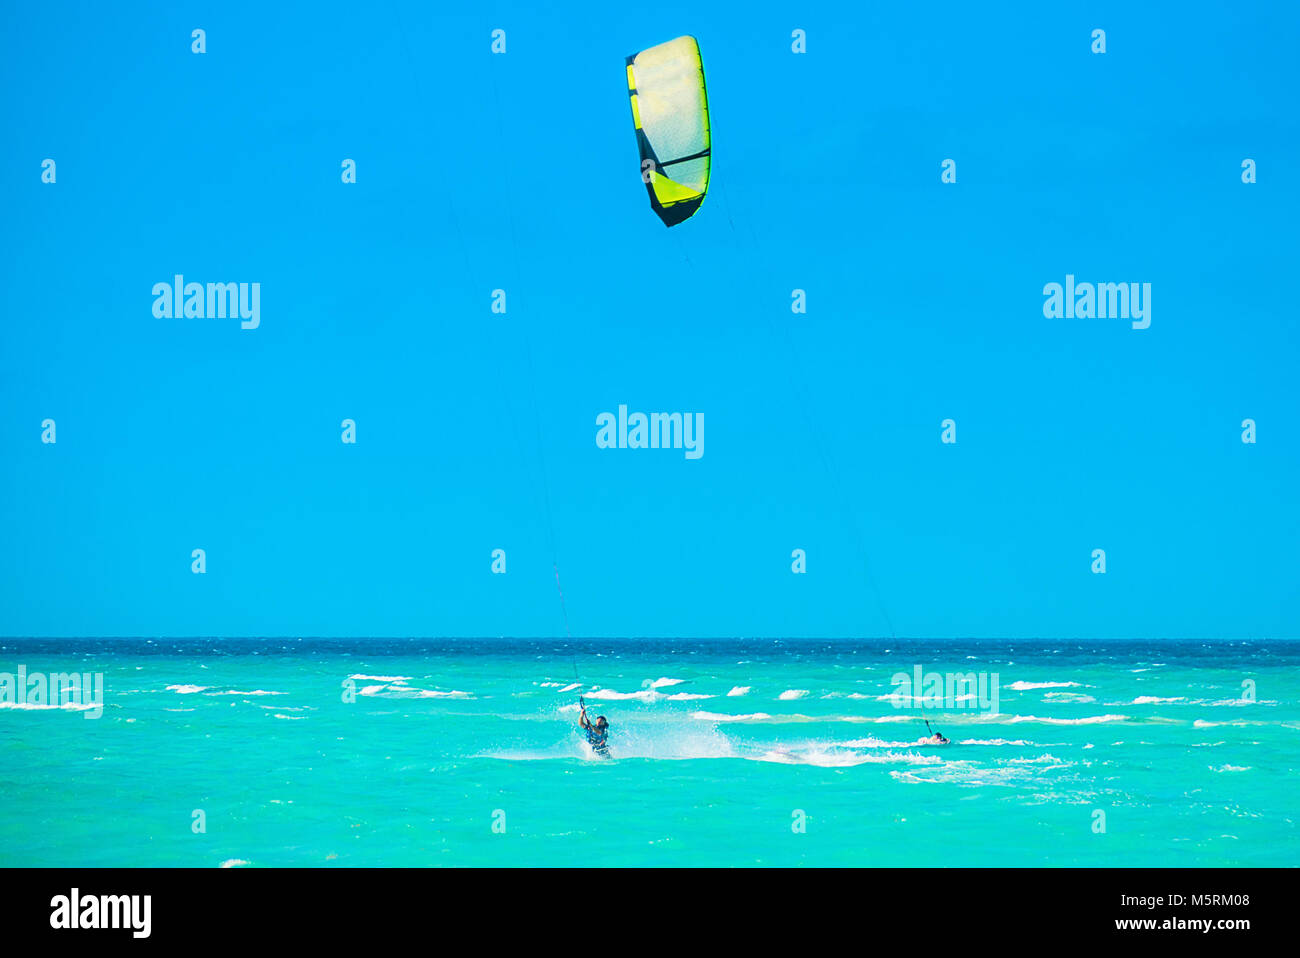 Cayo Guillermo , Cuba - 25 March 2012 : Athletes surfer involved - Stock Image